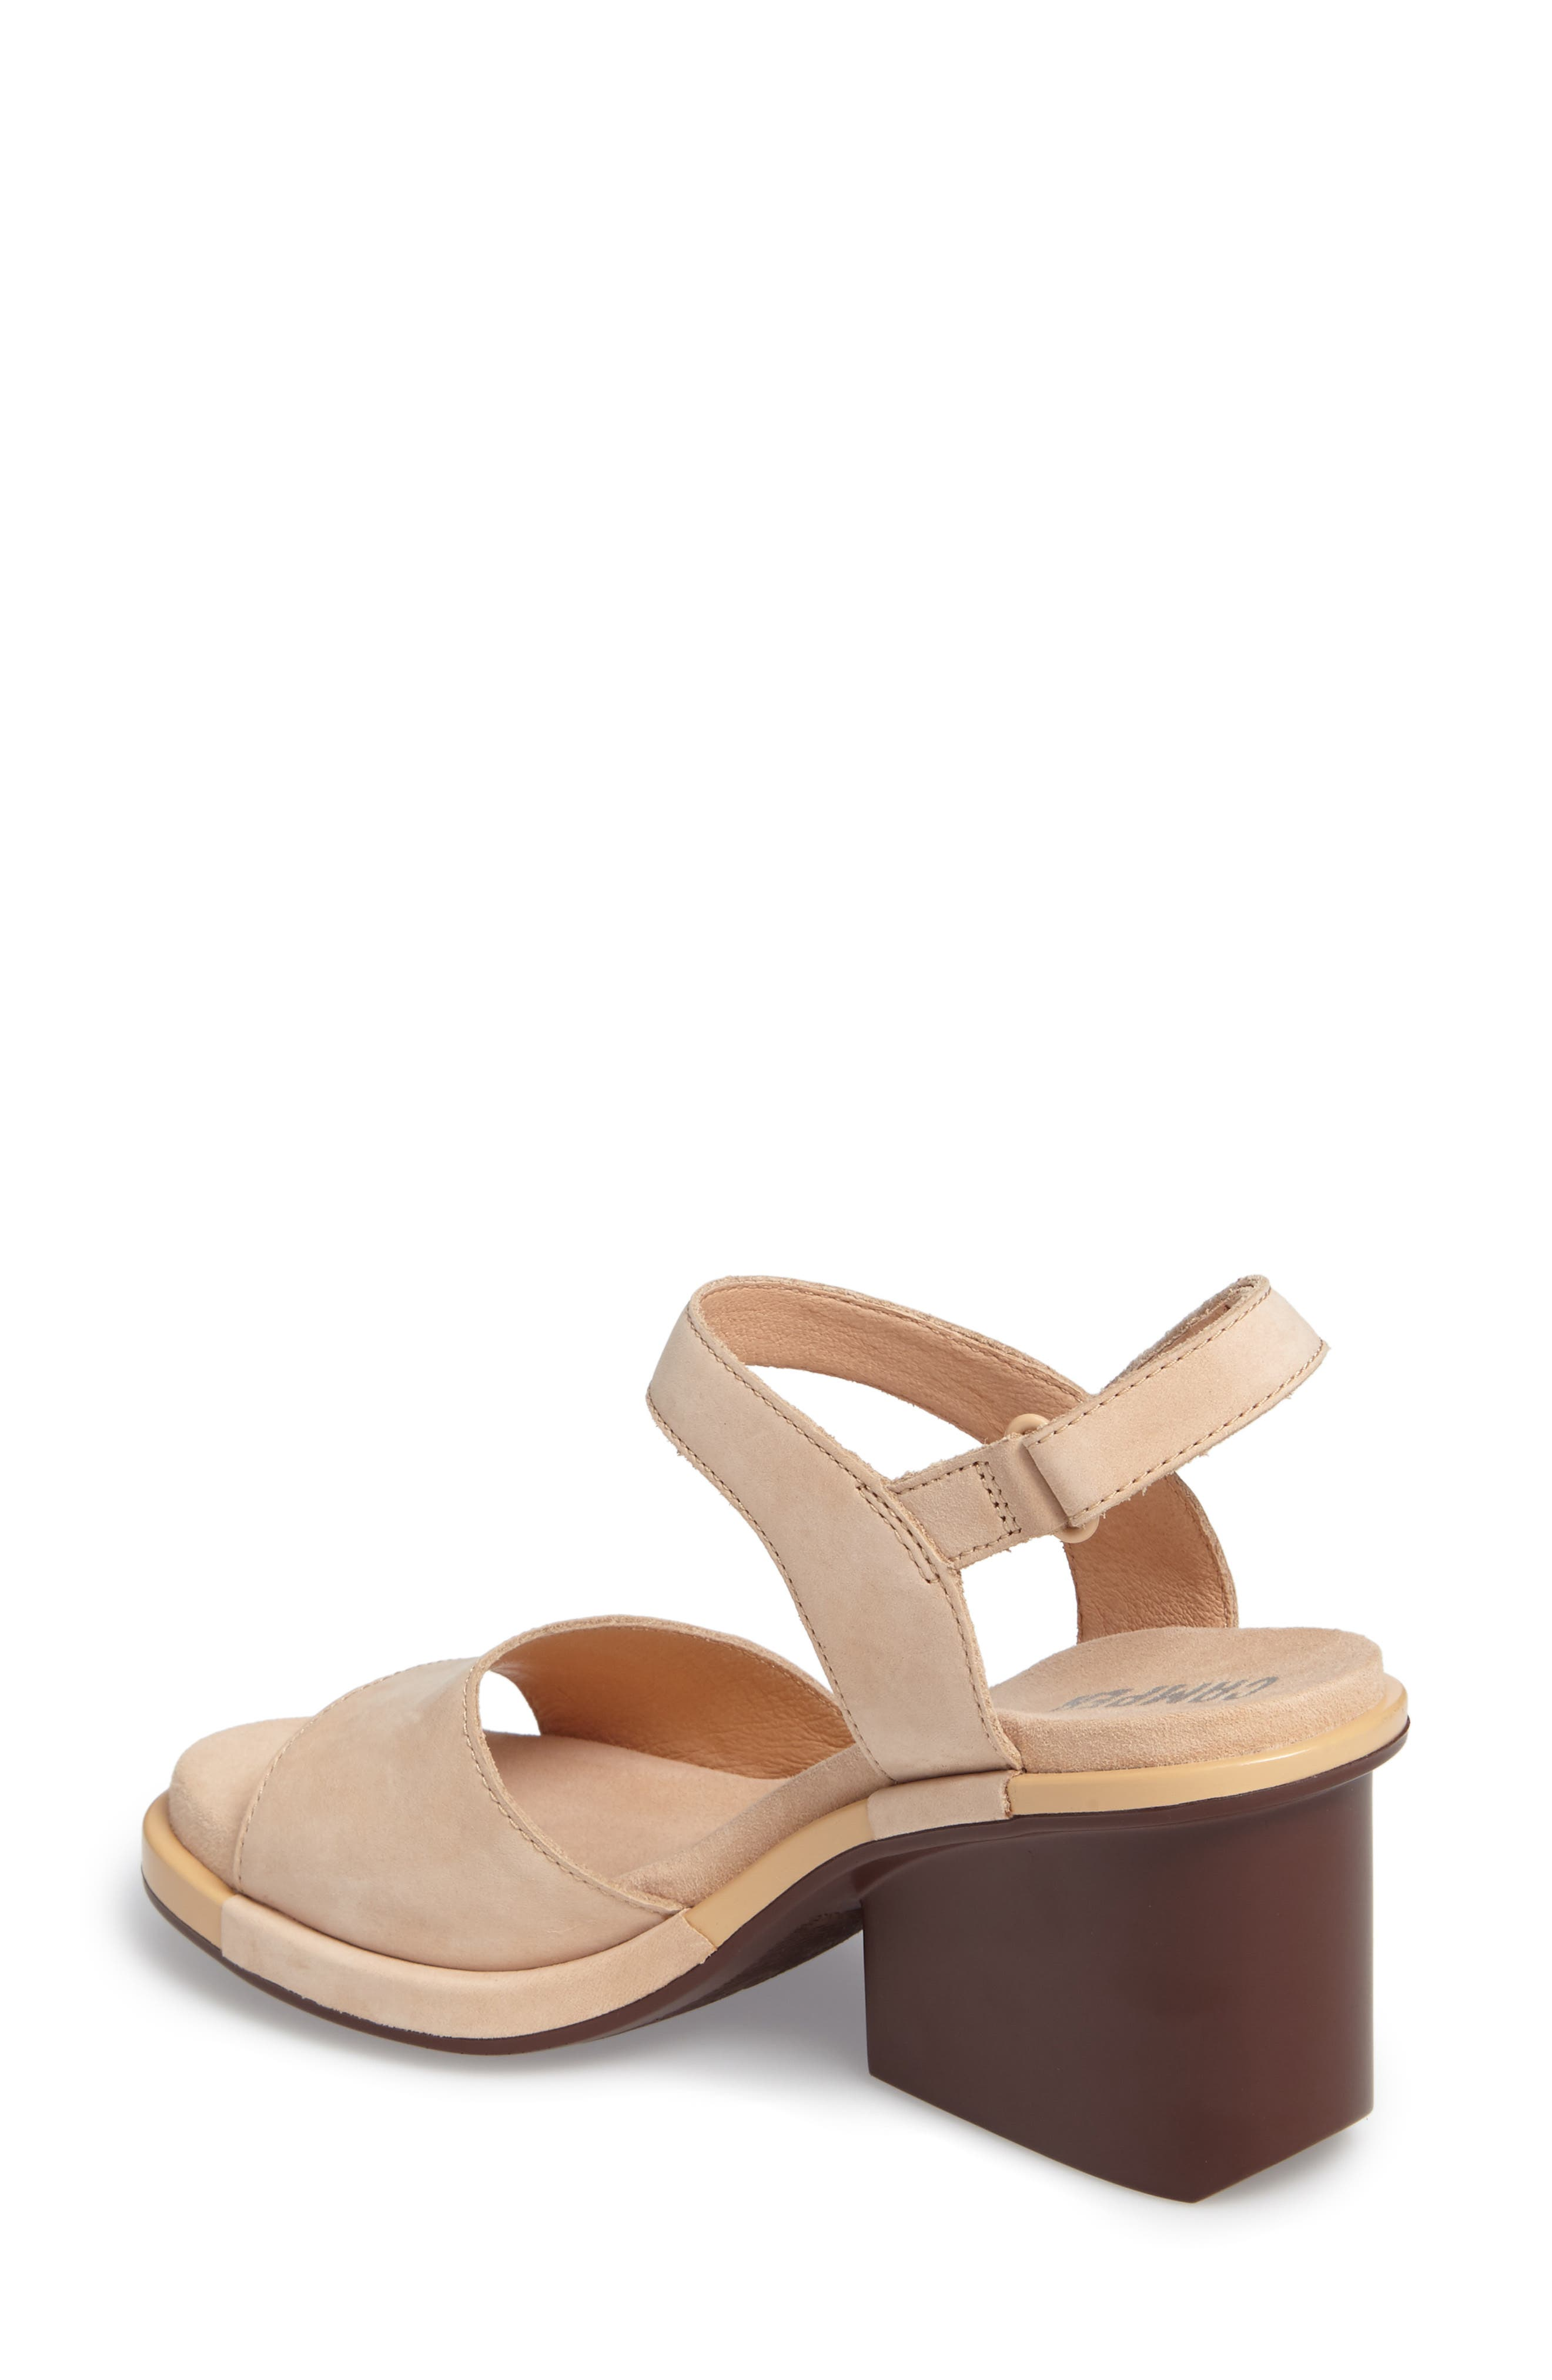 Ivy Ankle Strap Sandal,                             Alternate thumbnail 2, color,                             BEIGE LEATHER